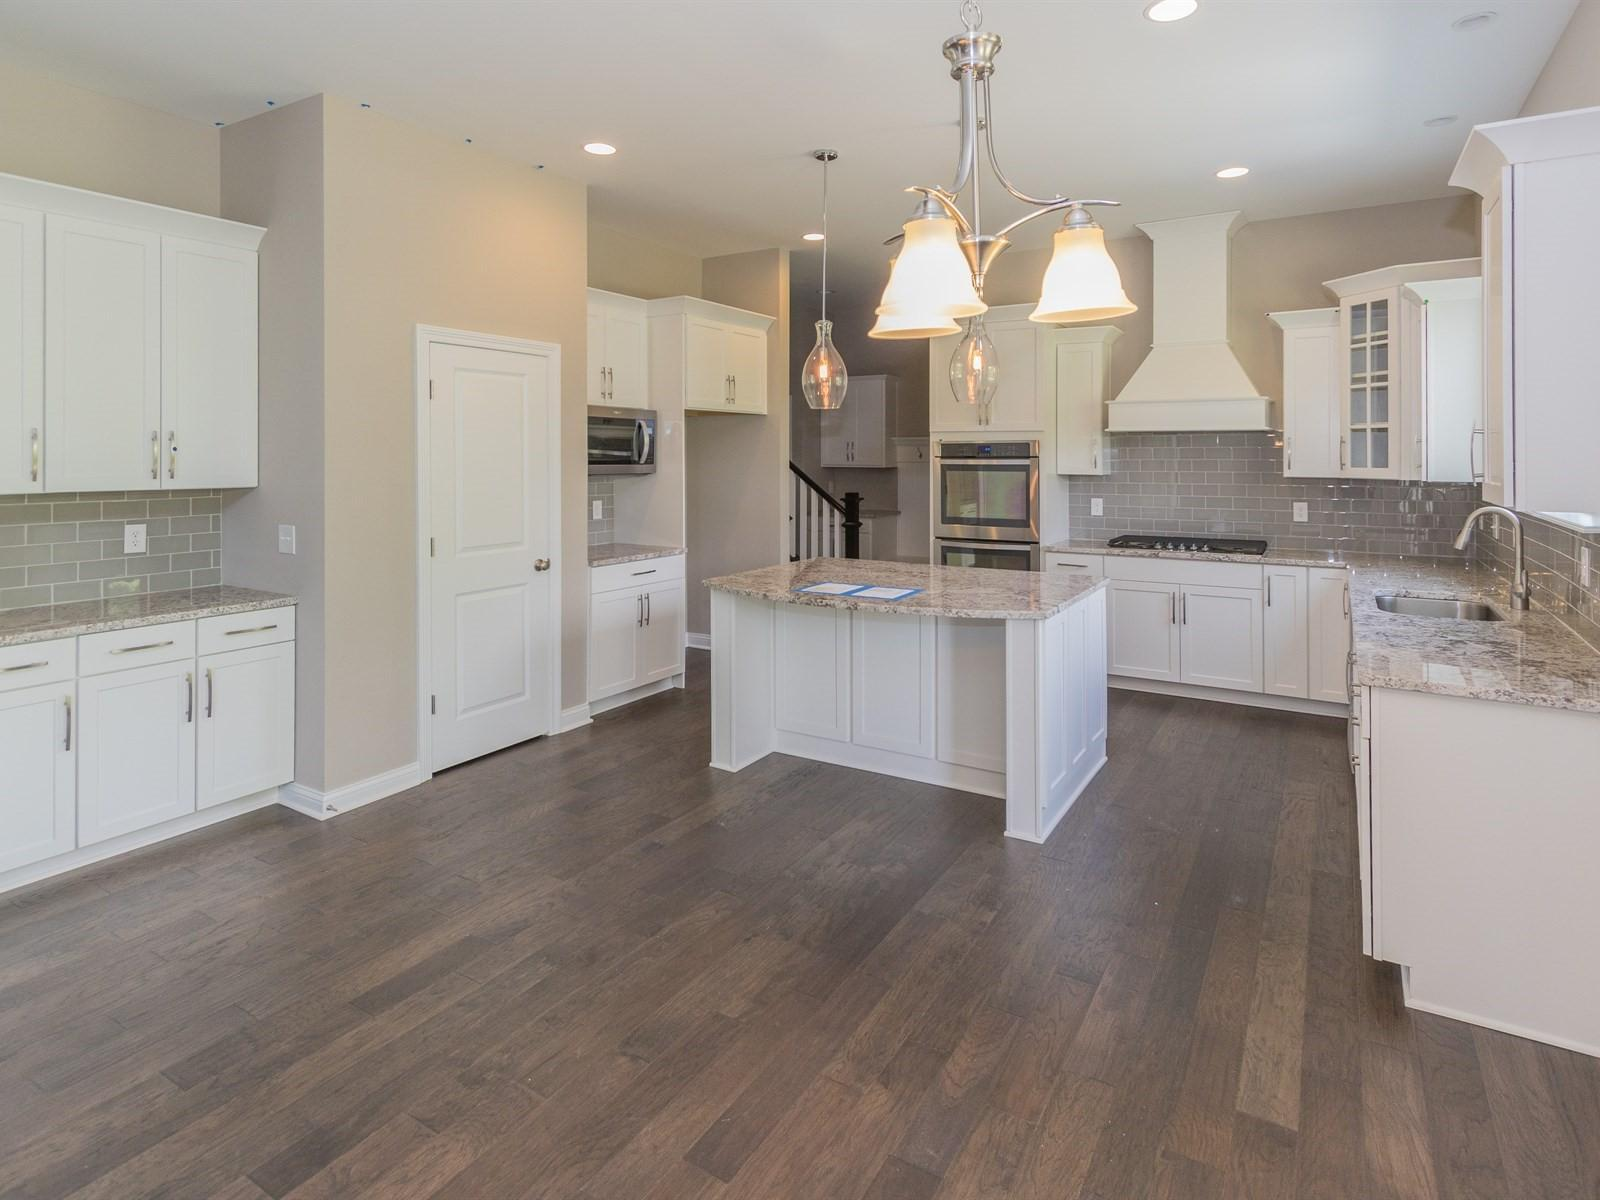 Kitchen featured in the Langdon By Drees Homes in Indianapolis, IN